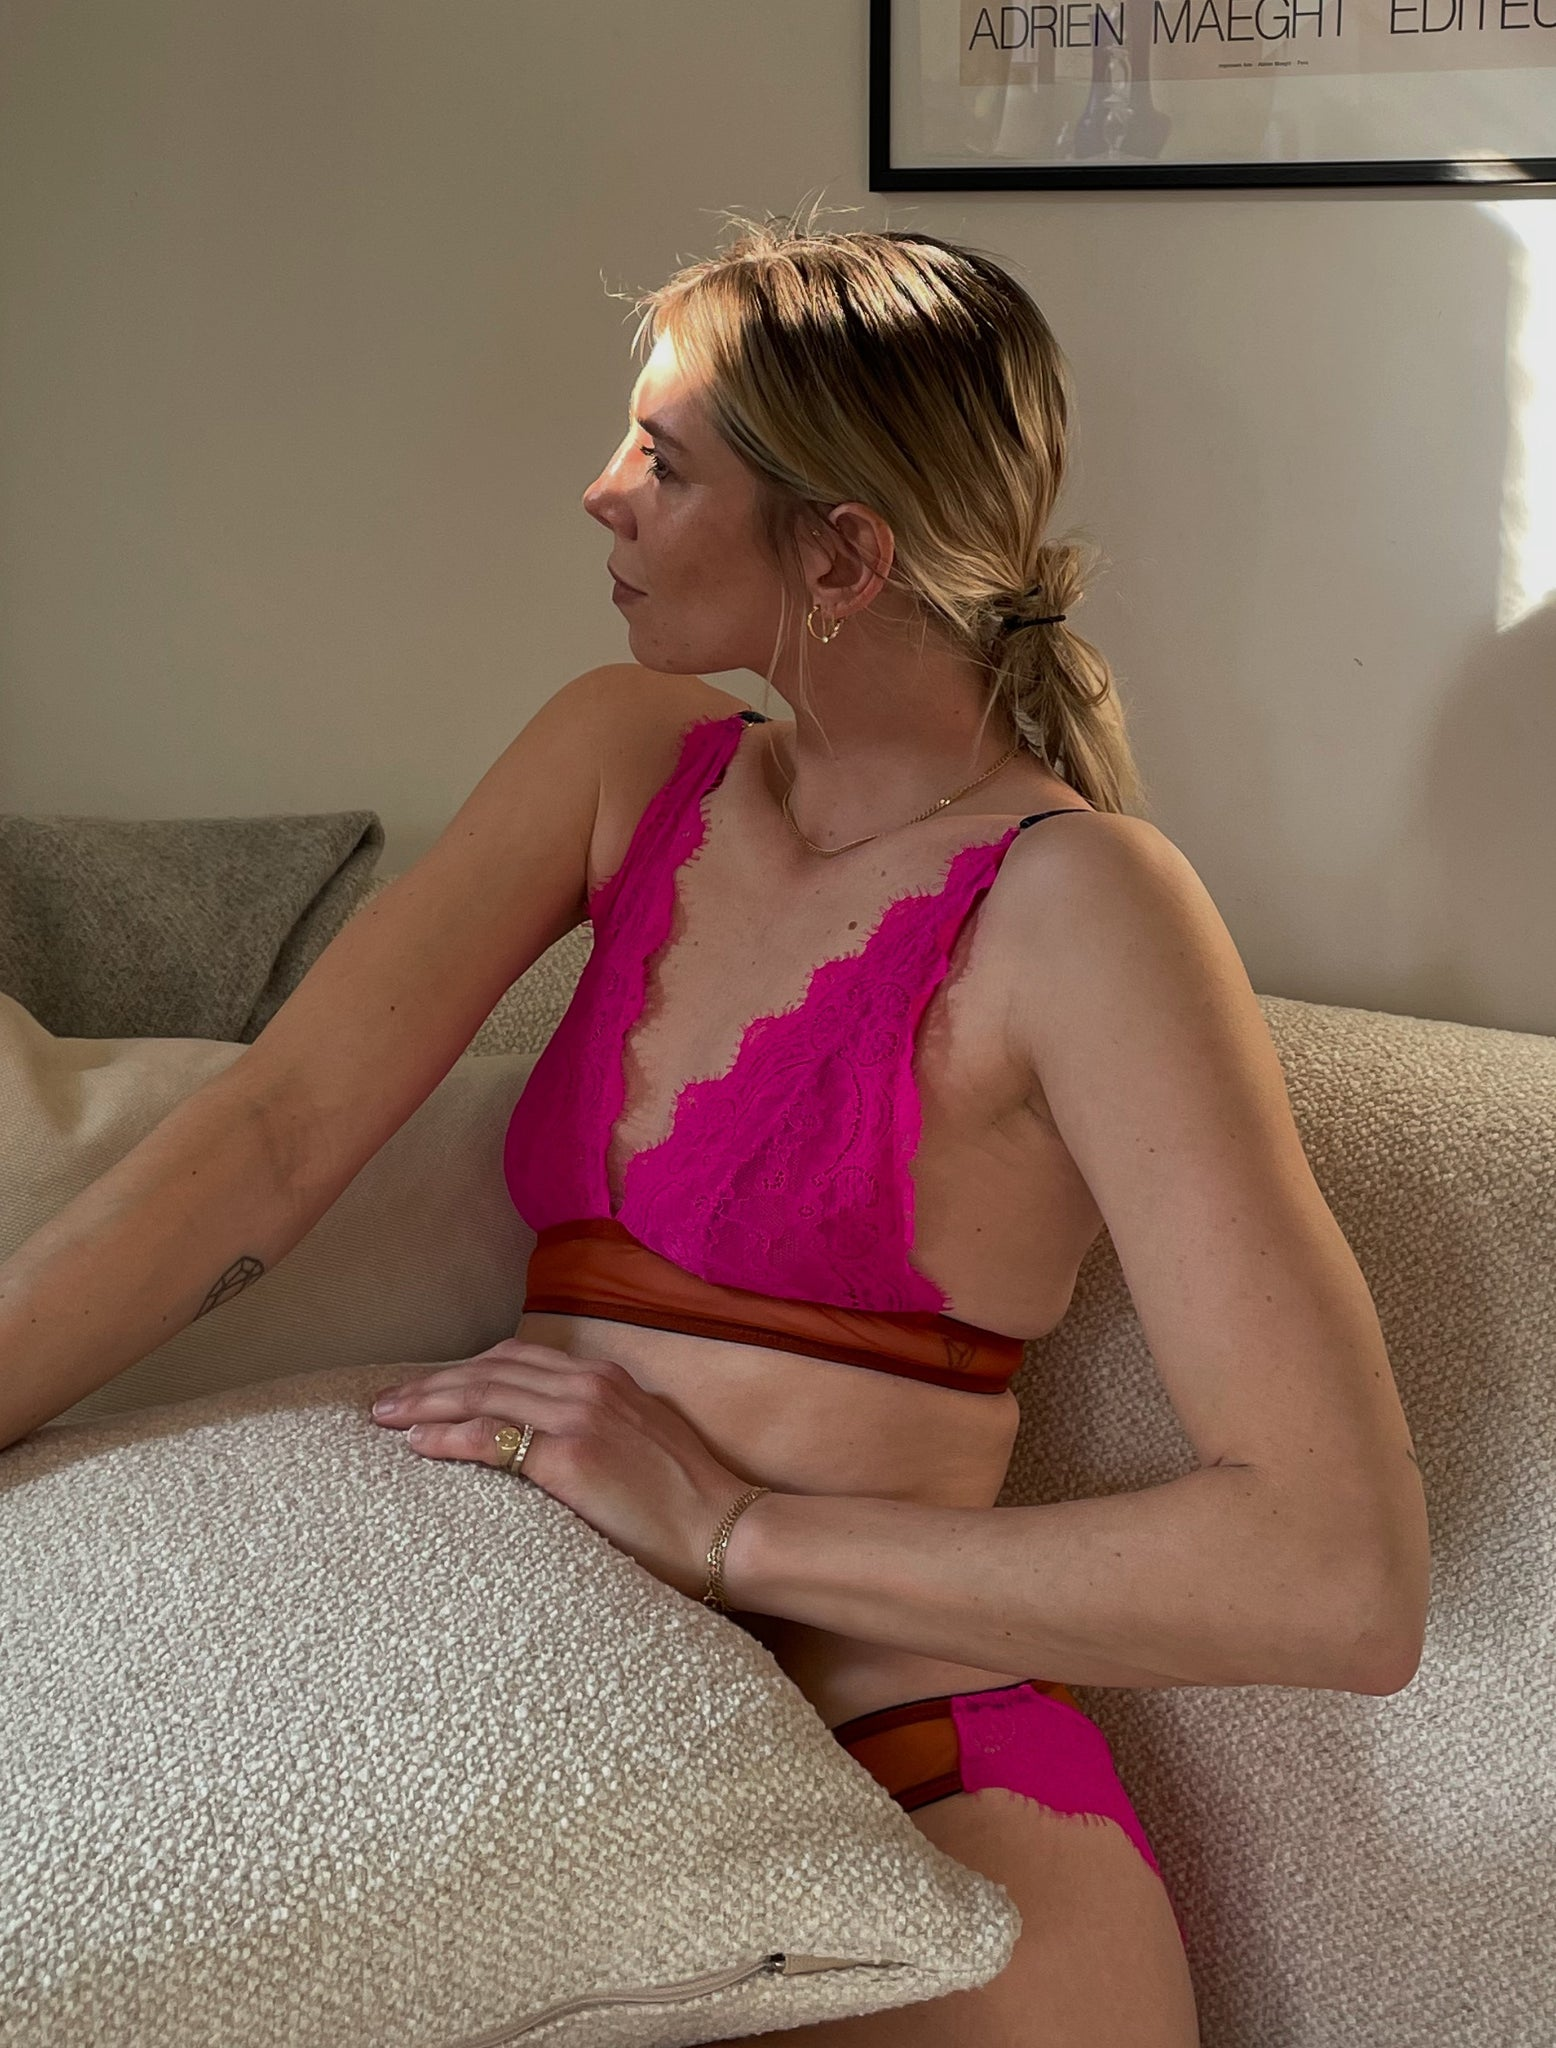 At Home With DL-At Home With Lindsey Holland - Dora Larsen | Colourful Lingerie